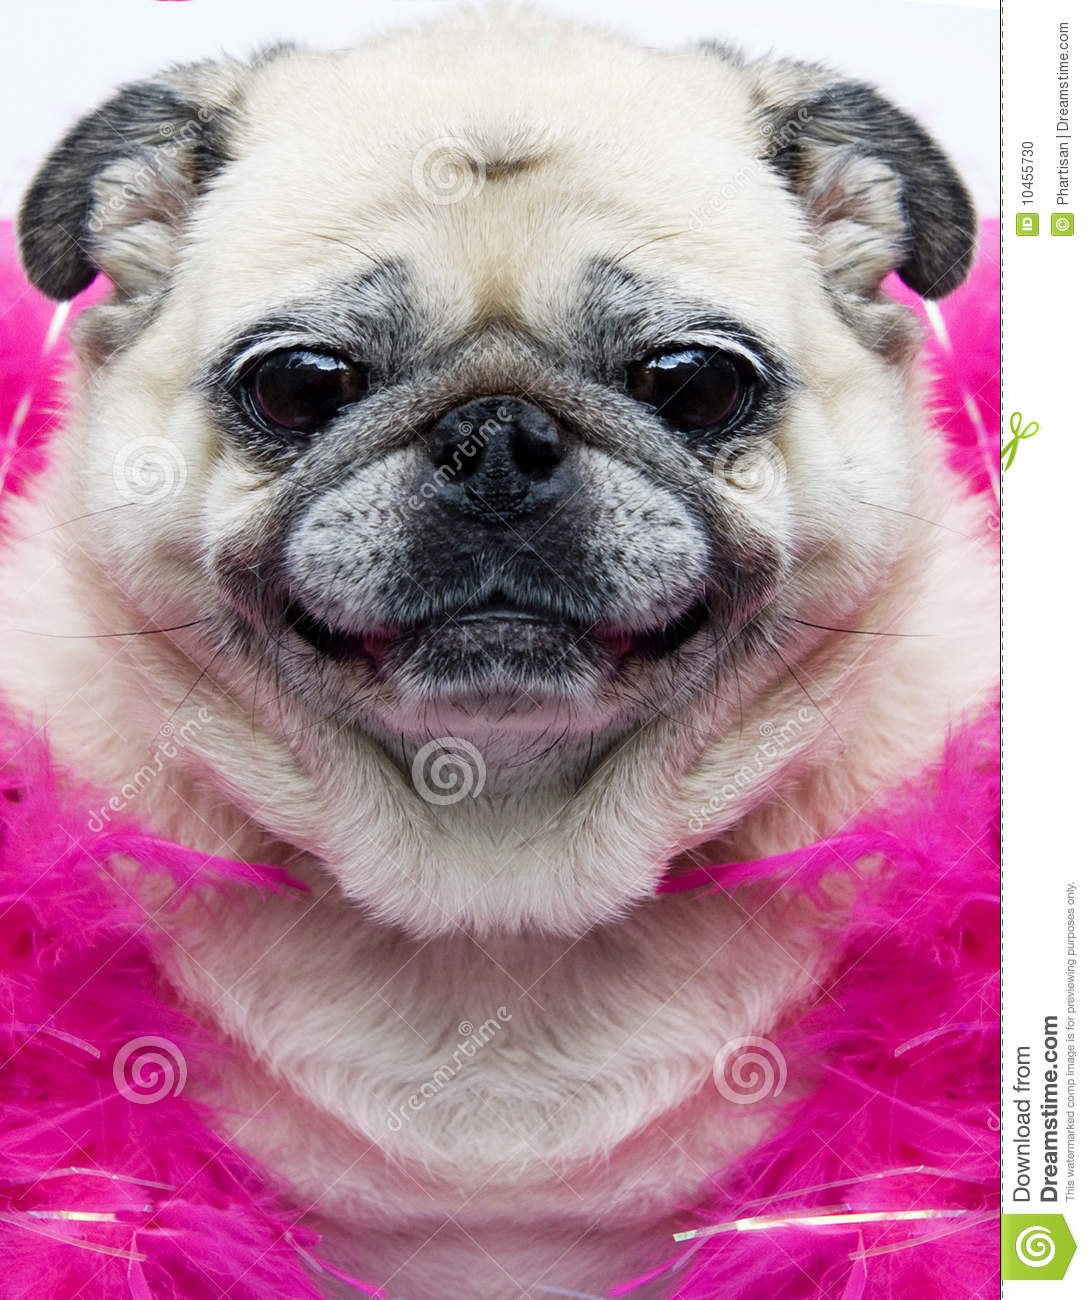 Funny Pug Face Royalty-Free Stock Image | CartoonDealer ...